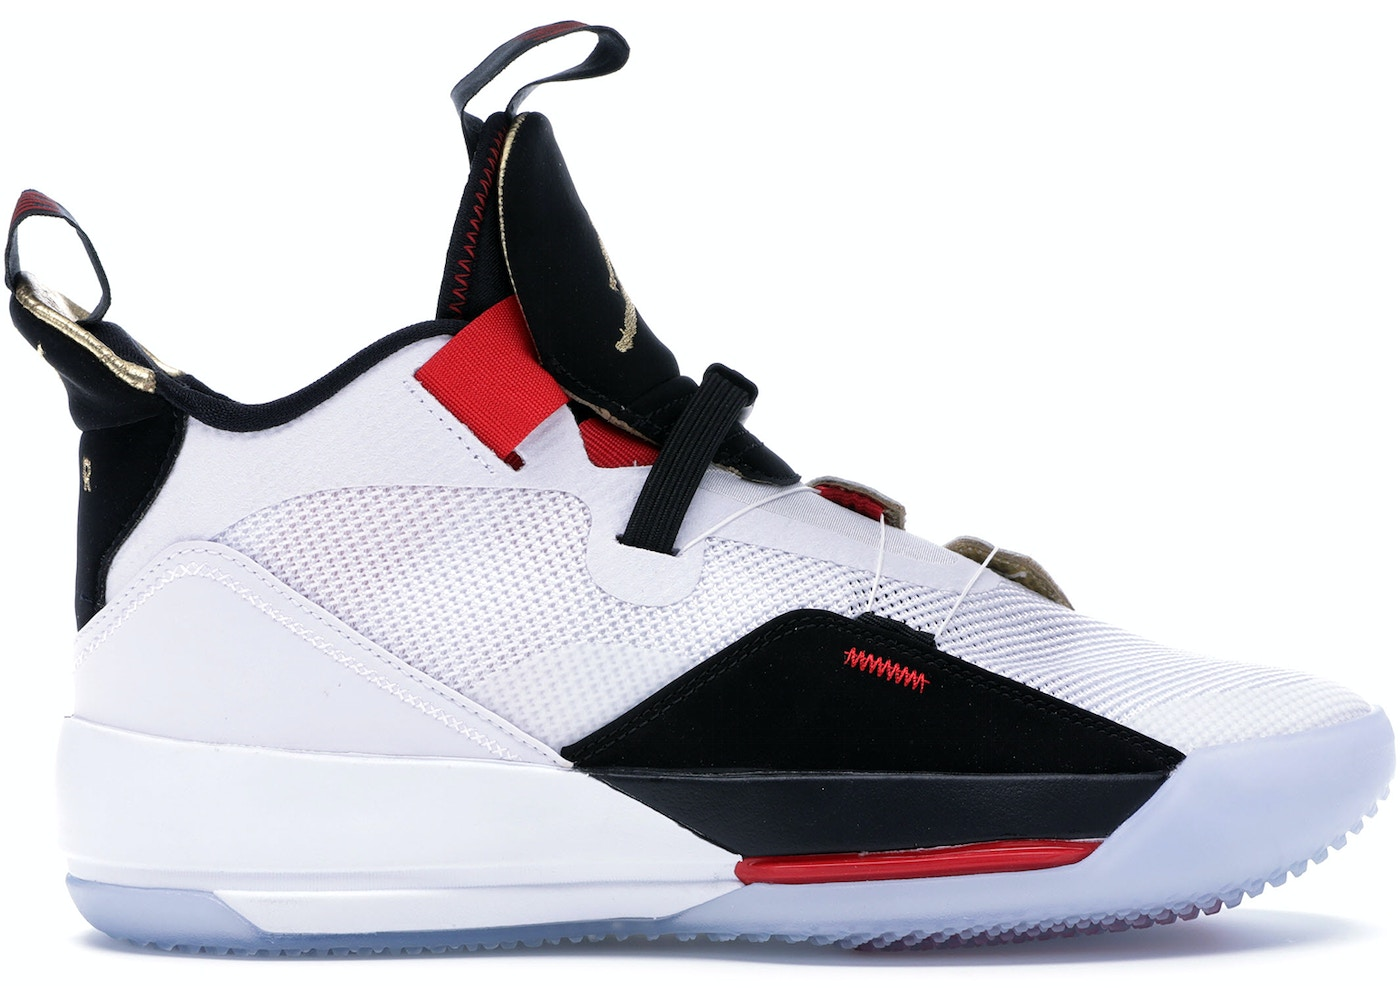 new style 15886 1d195 Jordan XXXIII Future of Flight - AQ8830-100 BV5072-100 (Overseas)